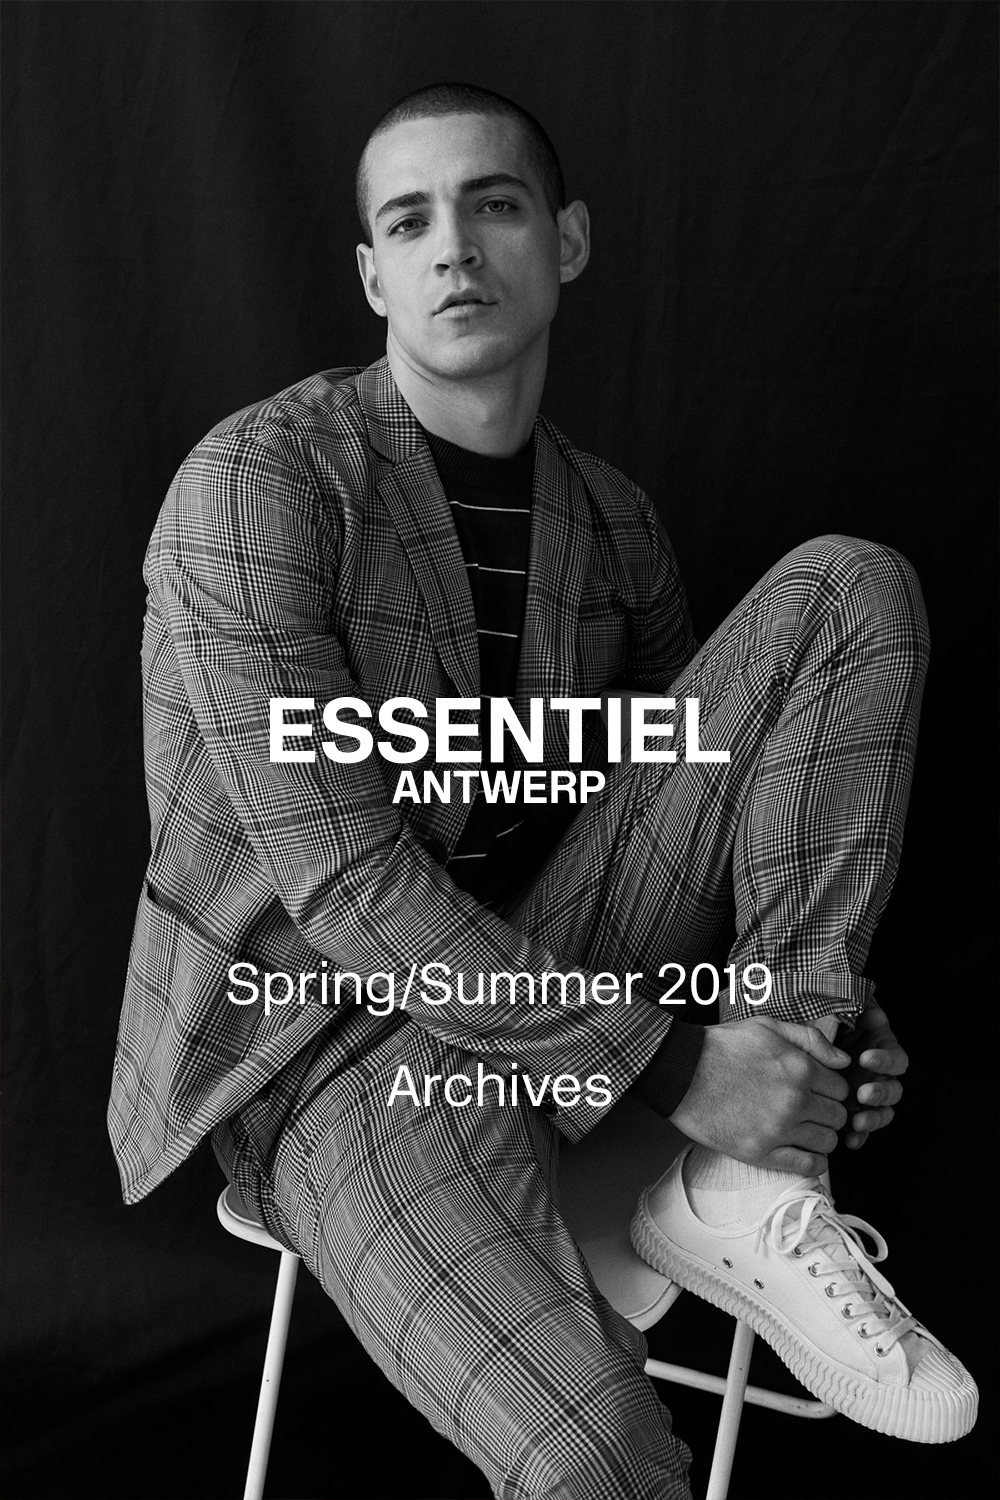 By popular demand, we're re-opening our doors to our Men's Archives SS19 with new stock added.